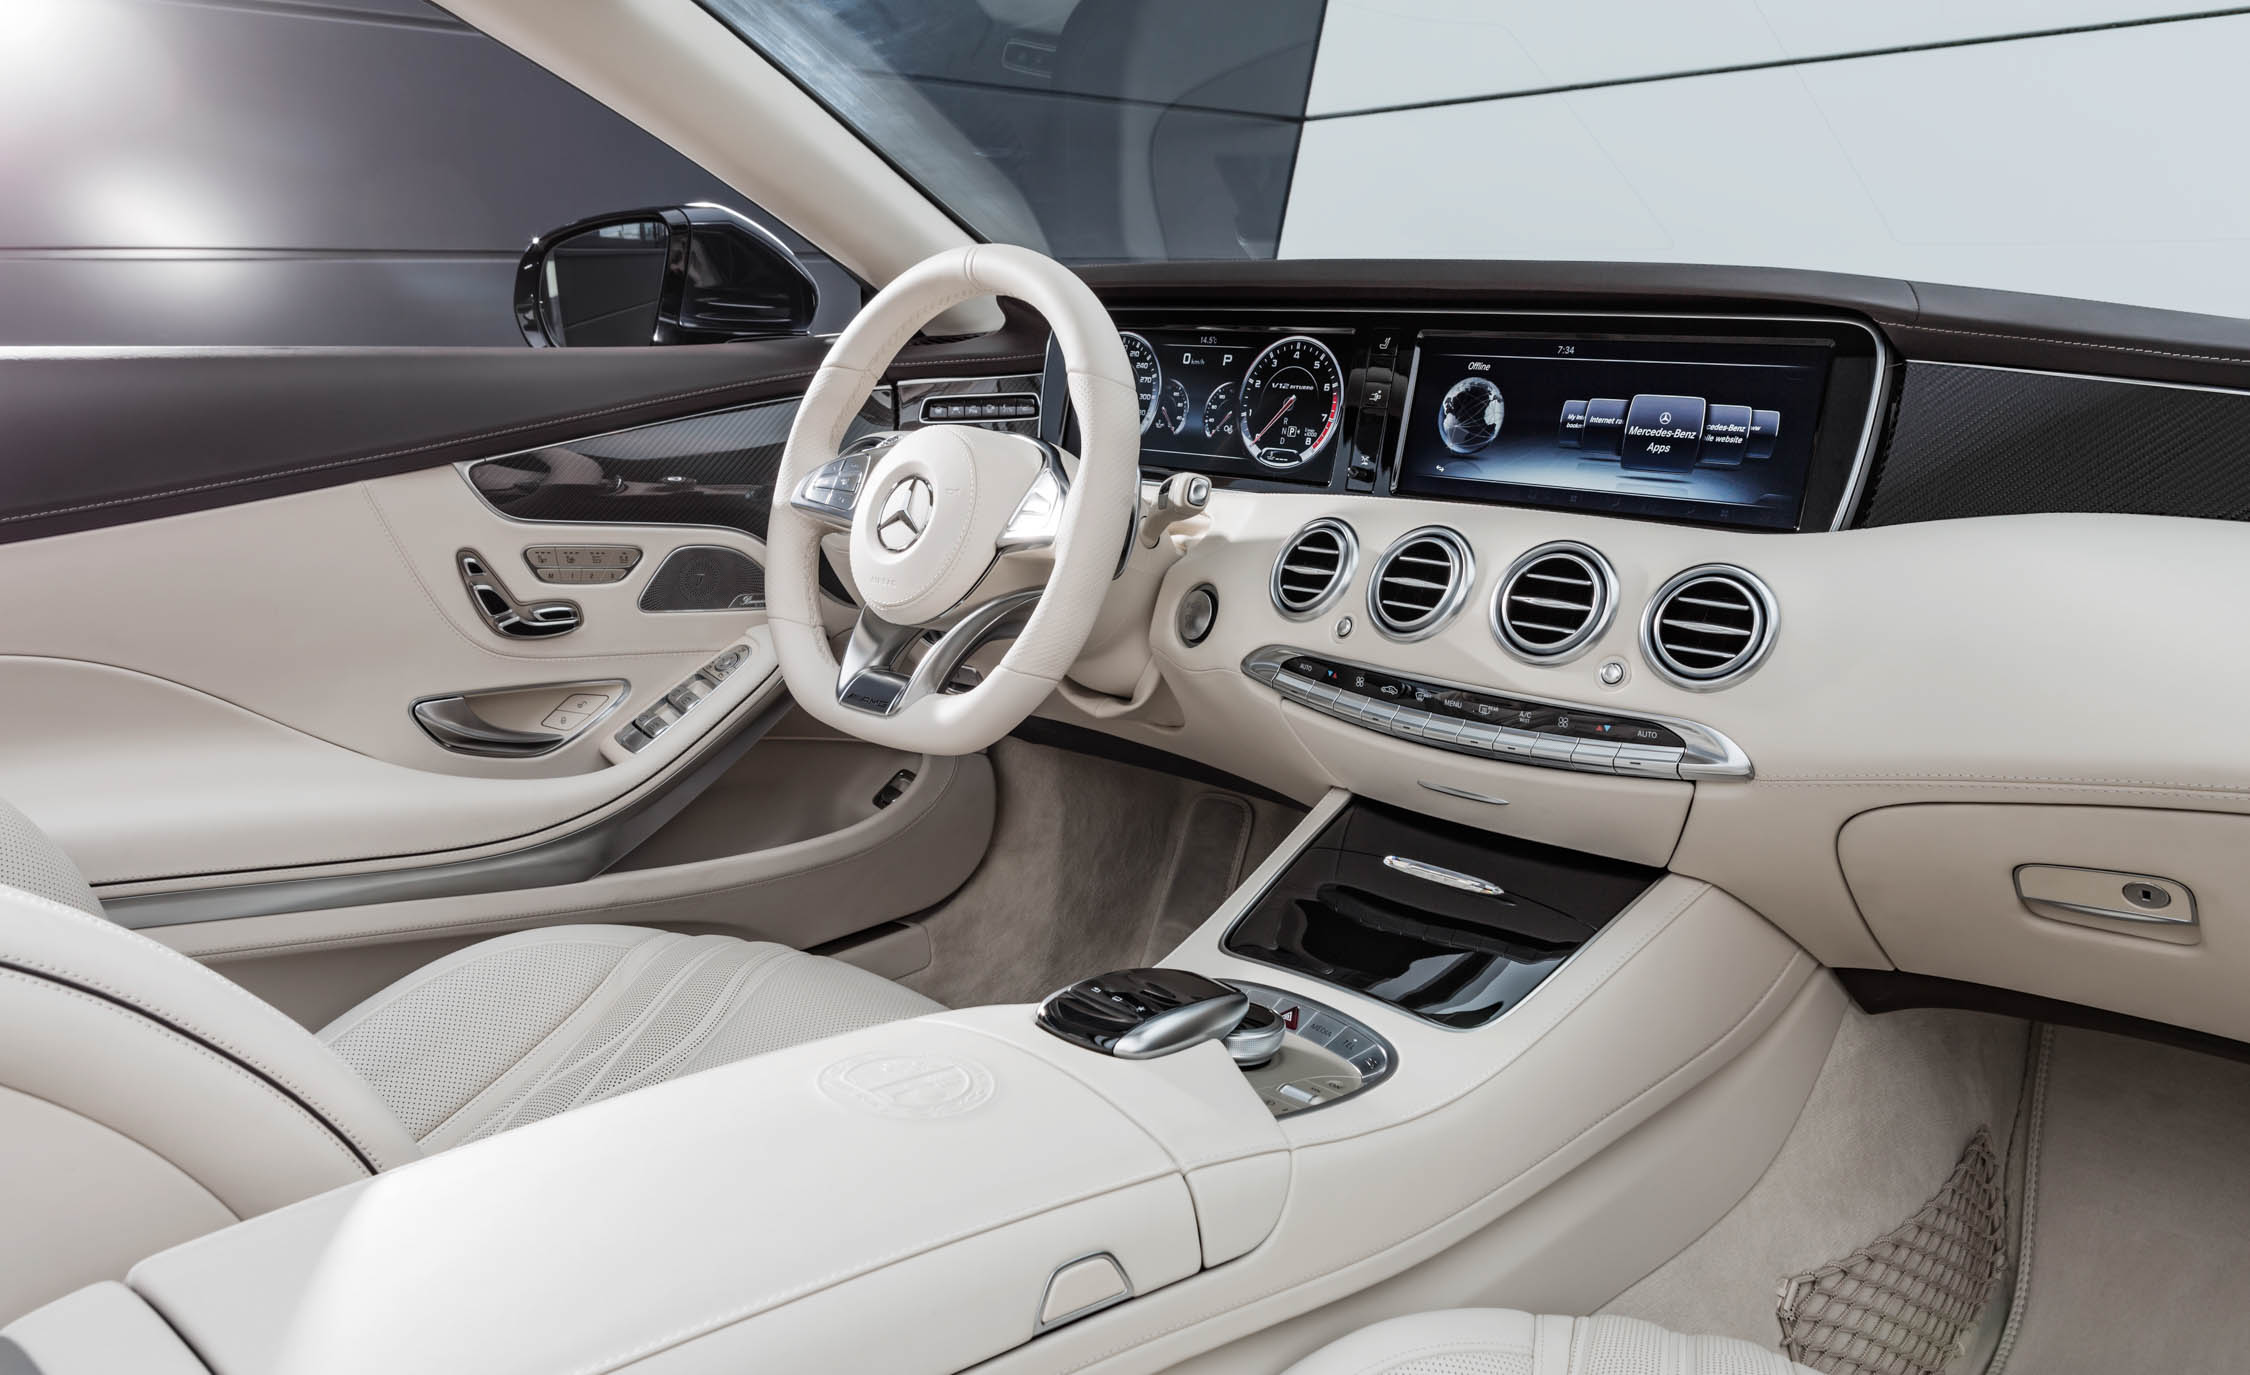 2017 Mercedes Amg S65 Cabriolet Interior Dashboard And Headunit Multimedia (Photo 12 of 15)